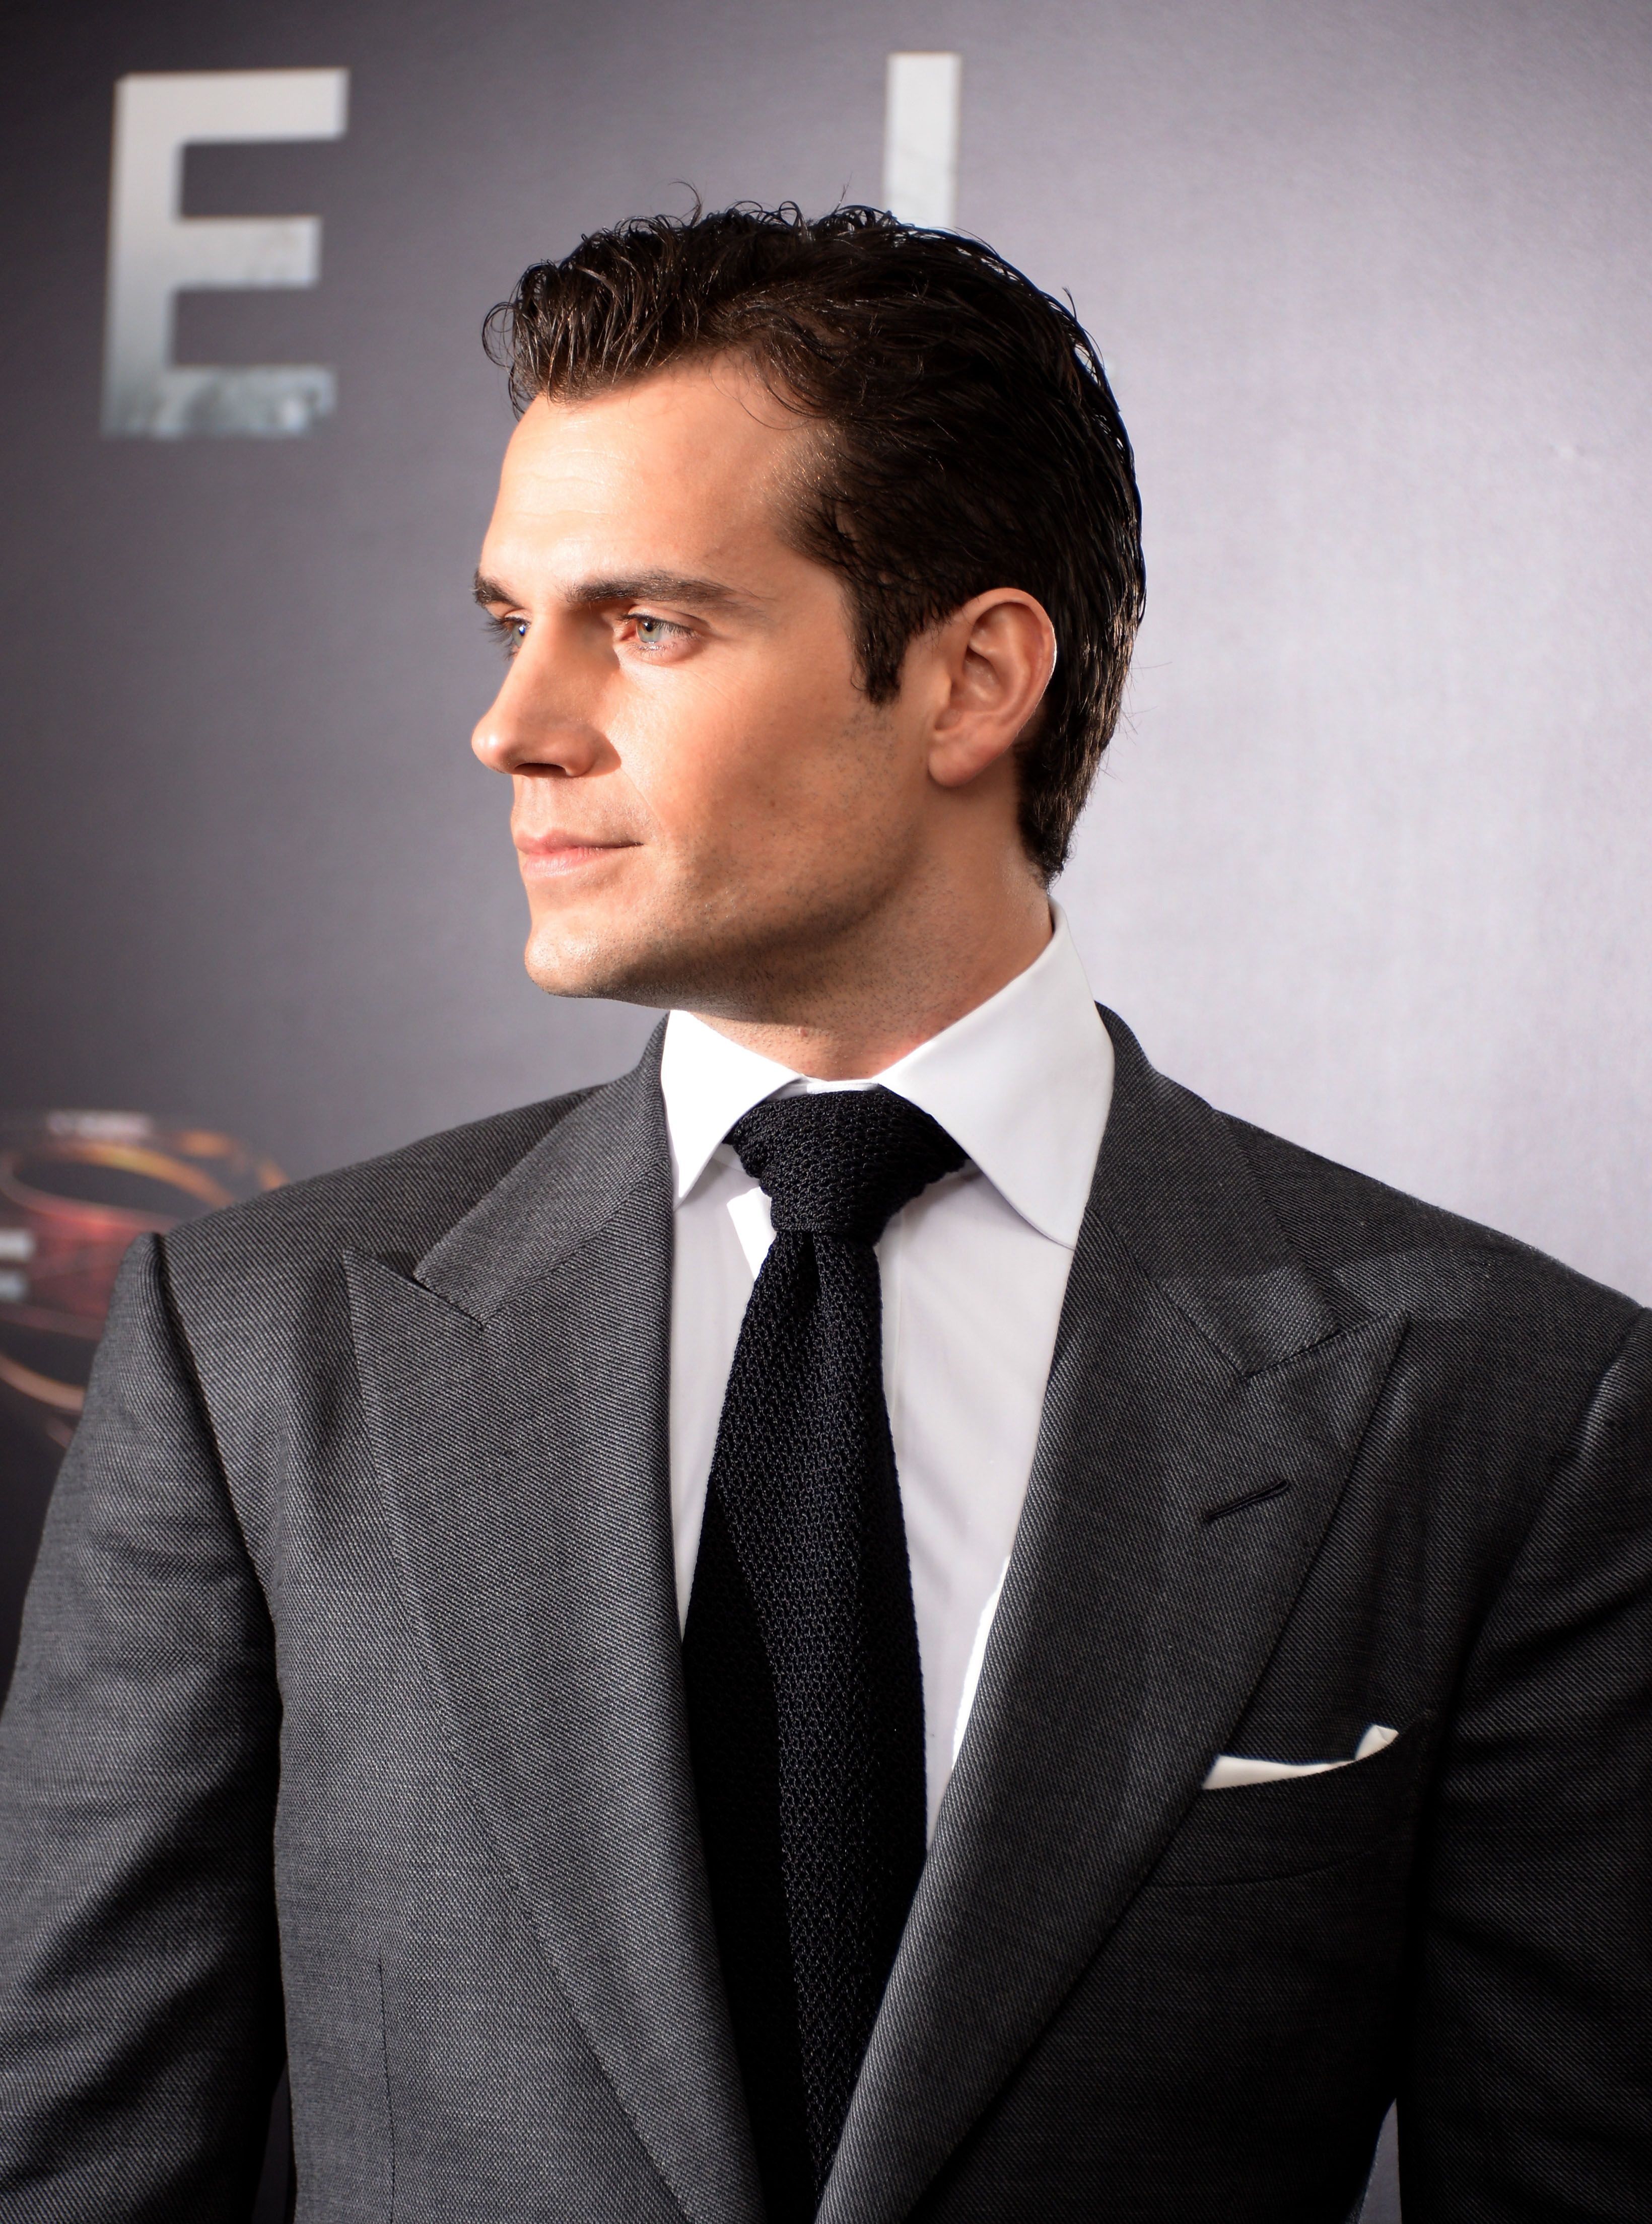 NEW YORK, NY - JUNE 10: Actor Henry Cavill attends the ' Man Of Steel' world premiere at Alice Tully Hall at Lincoln Center on June 10, 2013 in New York City.